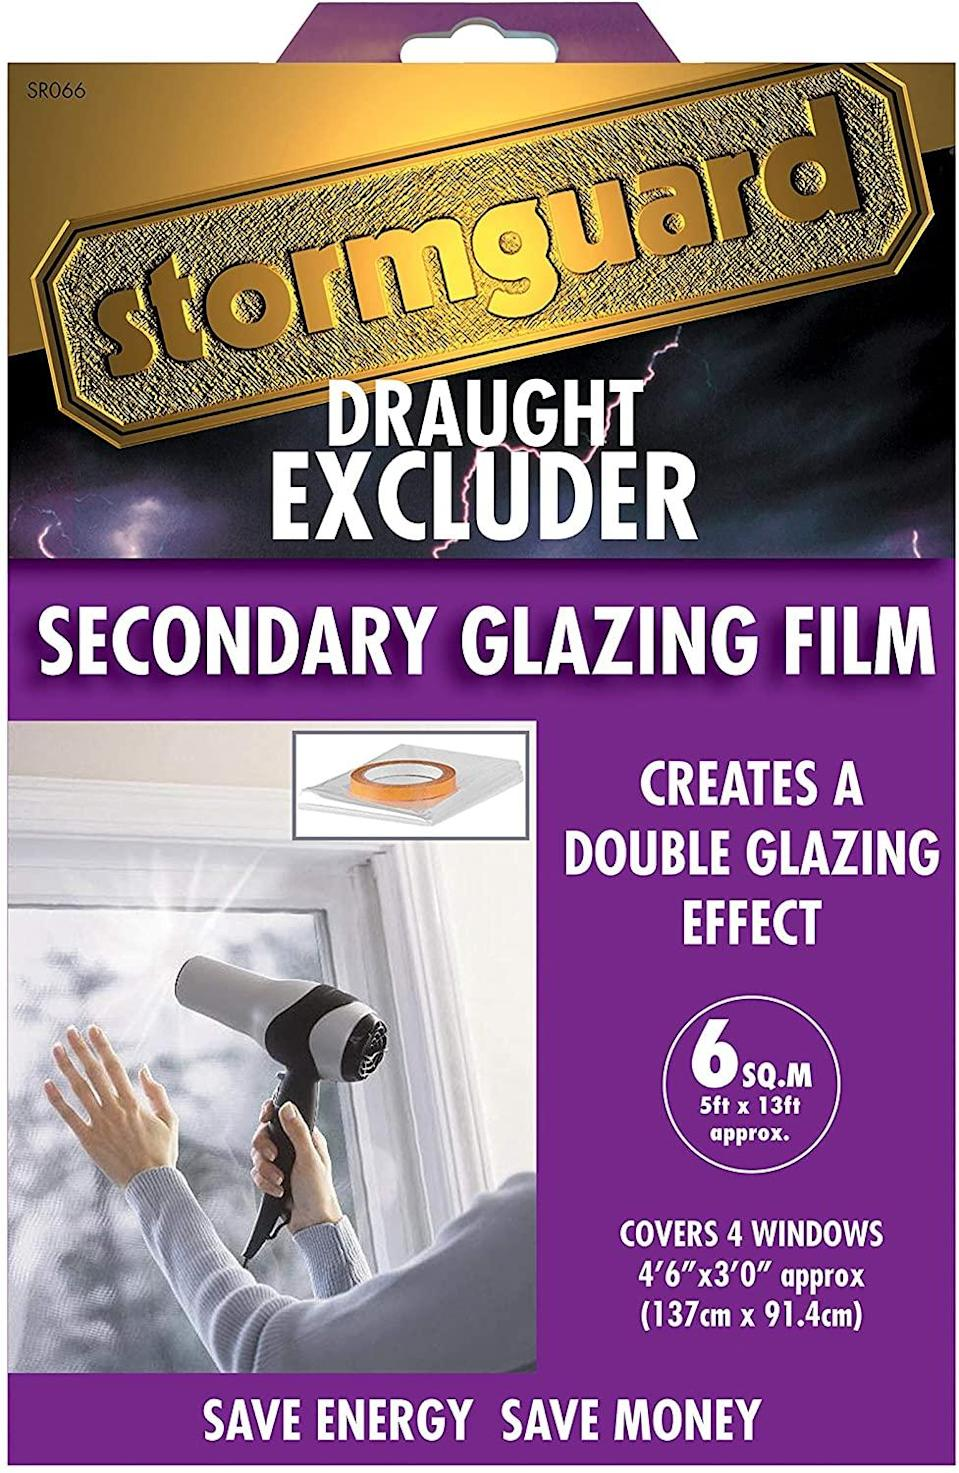 "<h3>Double Glazing Film</h3><br>If you live in a <a href=""https://www.refinery29.com/en-gb/london-rental-hotspots-2020"" rel=""nofollow noopener"" target=""_blank"" data-ylk=""slk:rented space"" class=""link rapid-noclick-resp"">rented space</a>, you likely have little control over the big things, including the glazing on your windows. But just because you currently have draughty single-glazed panes doesn't mean you have to continue that way throughout winter. One of the easiest solutions to thin windows is adding a secondary glazing film which works to insulate the glass. Applied to the windows using heat (a <a href=""https://www.refinery29.com/en-gb/best-hairdryer-all-hair-types"" rel=""nofollow noopener"" target=""_blank"" data-ylk=""slk:hairdryer"" class=""link rapid-noclick-resp"">hairdryer </a>will work fine), the sticky film applies an extra layer of protection from the elements, leaving your space feeling instantly warmer.<br><br><strong>Stormguard</strong> Secondary Glazing Window Insulation Film, $, available at <a href=""https://www.amazon.co.uk/Stormguard-11SR0666SQM-Secondary-Glazing-Insulation/dp/B00AL8L20I/ref=asc_df_B00AL8L20I/?"" rel=""nofollow noopener"" target=""_blank"" data-ylk=""slk:Amazon"" class=""link rapid-noclick-resp"">Amazon</a>"